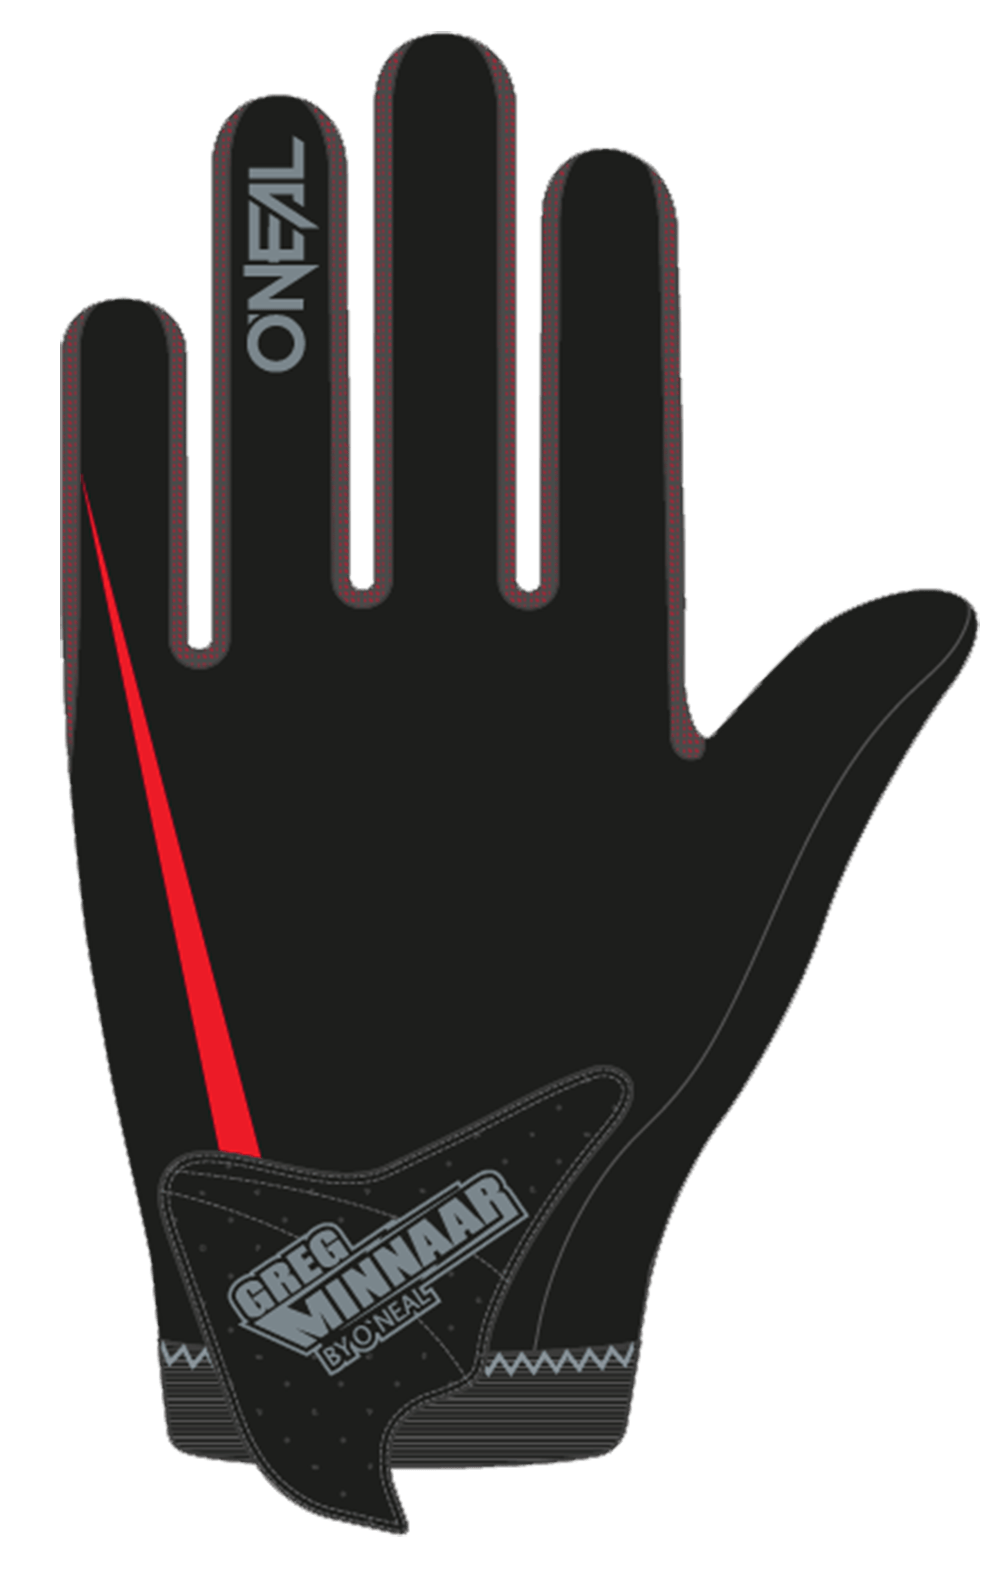 ELEMENT Women's Glove black/pink